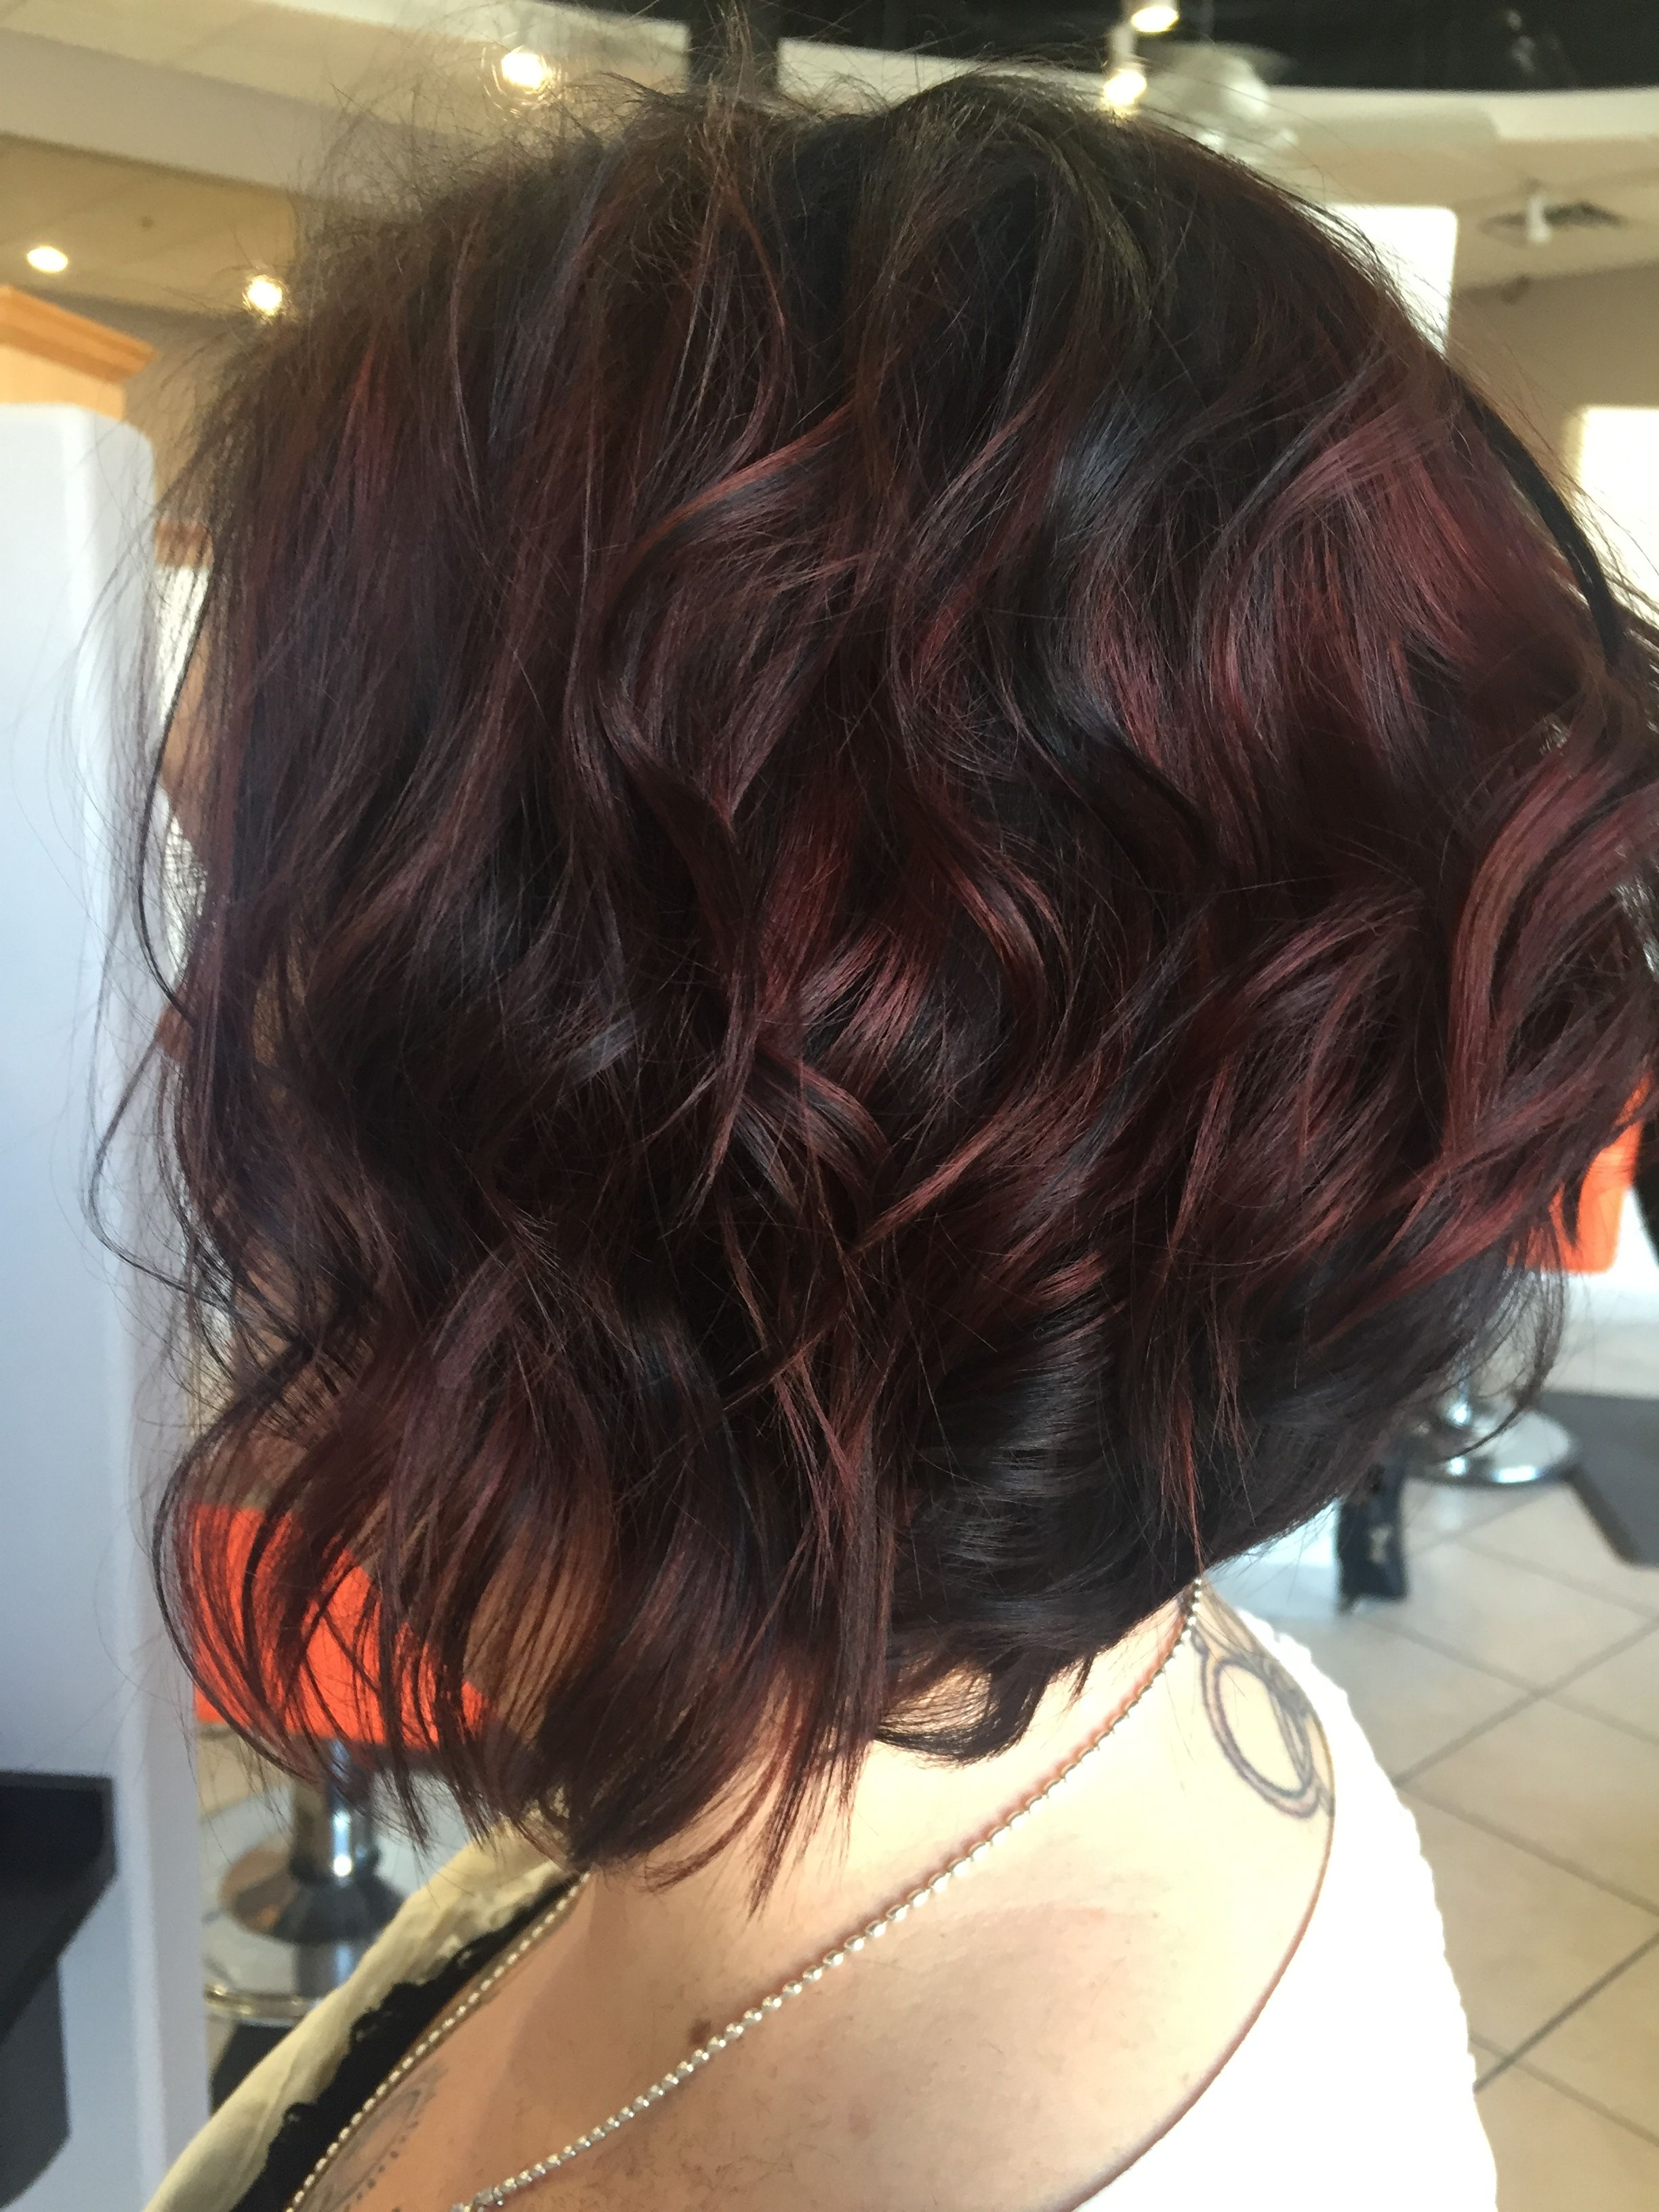 Fall hair color. Chocolate cherry! @DolledupbyShelby ...